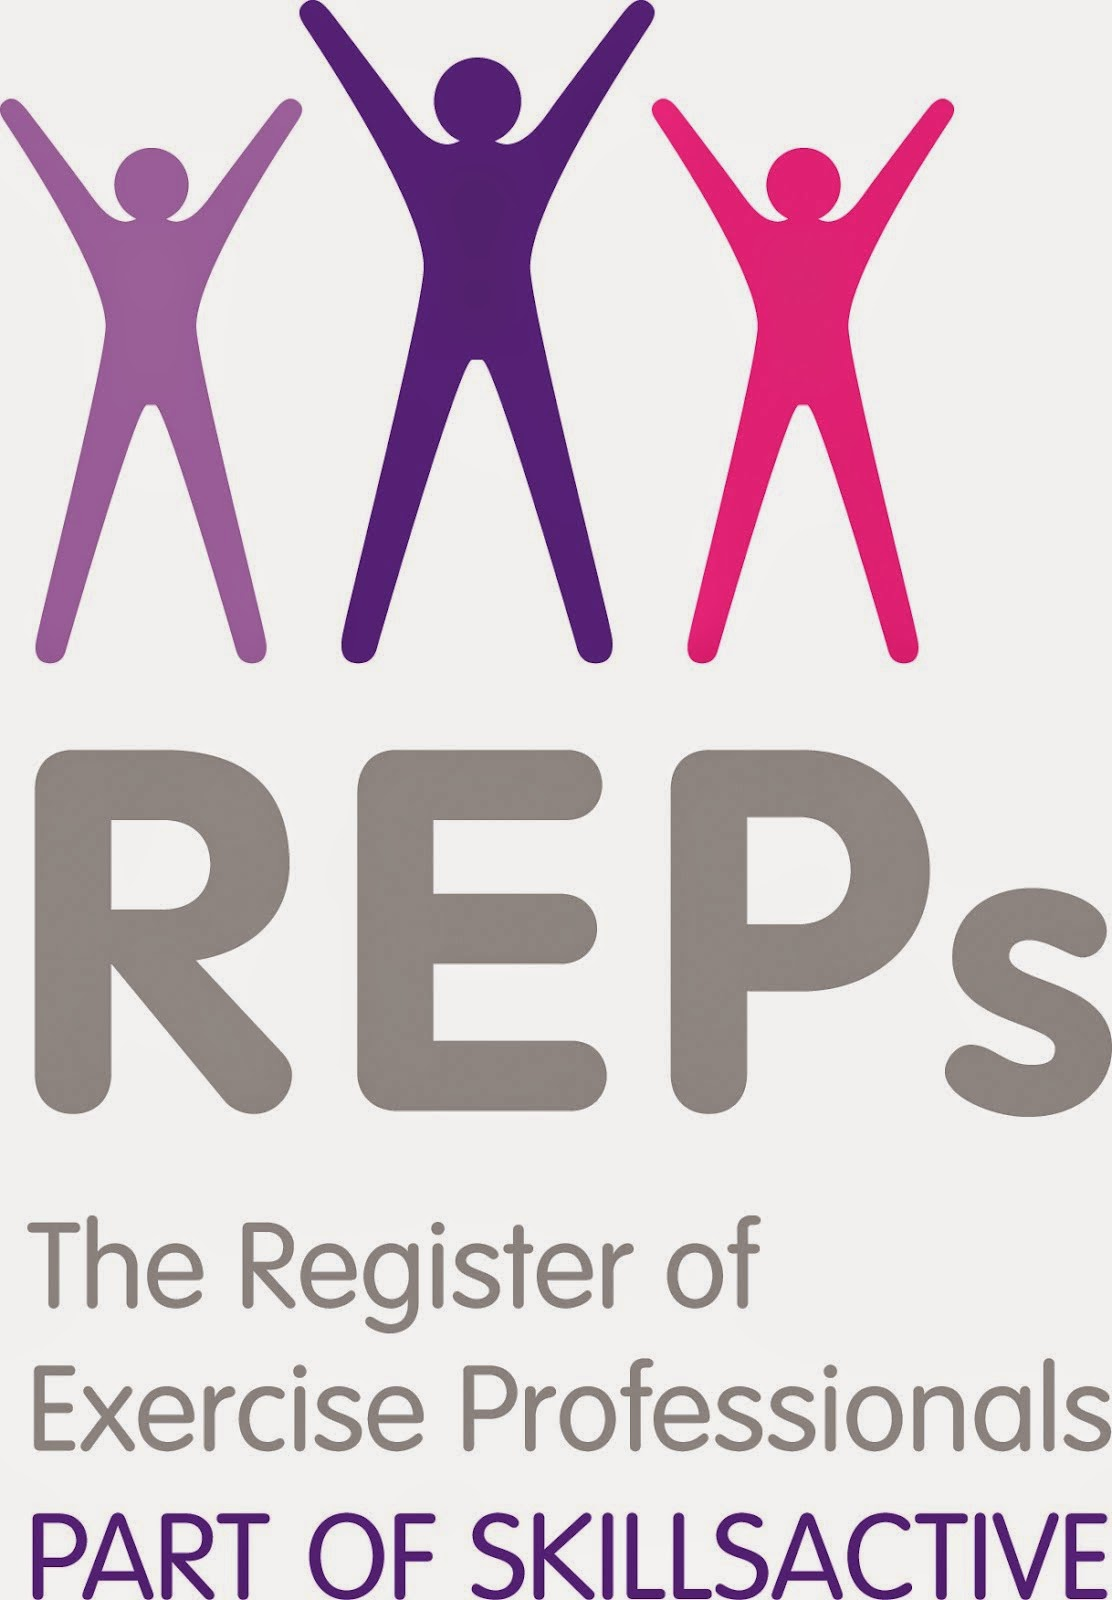 I'm a Registered Exercise Professional